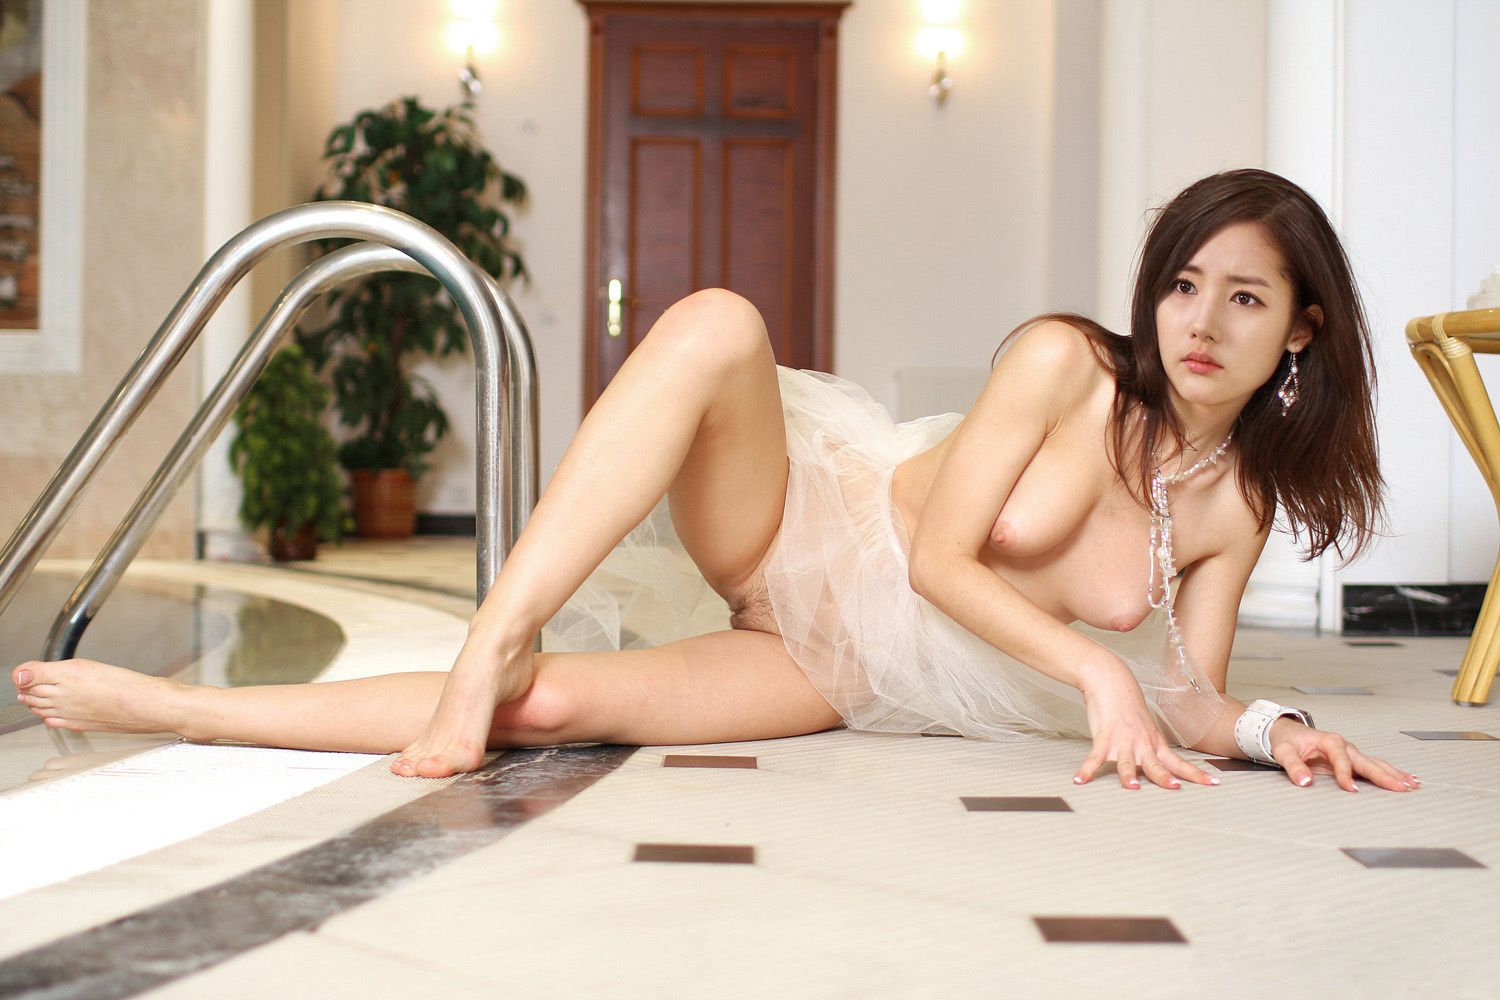 Park Min Young - Korean Idol Fake Nude Photo: http://spots5202003.blogspot.com/2015/05/park-min-young.html